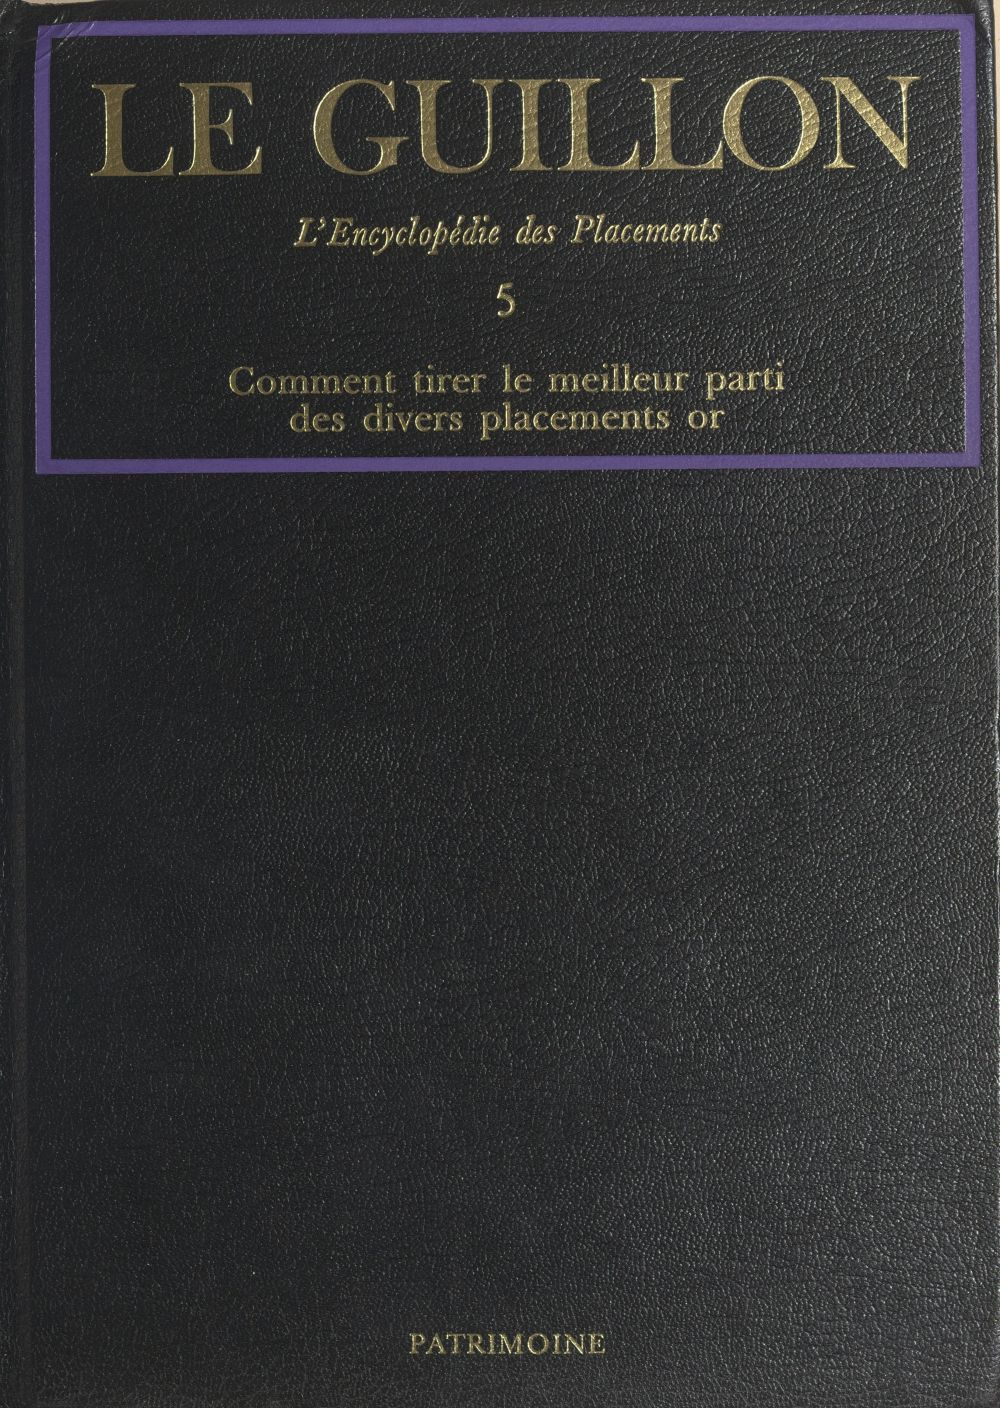 La nouvelle encyclopédie des placements (5). Comment tirer le meilleur parti des divers placements or